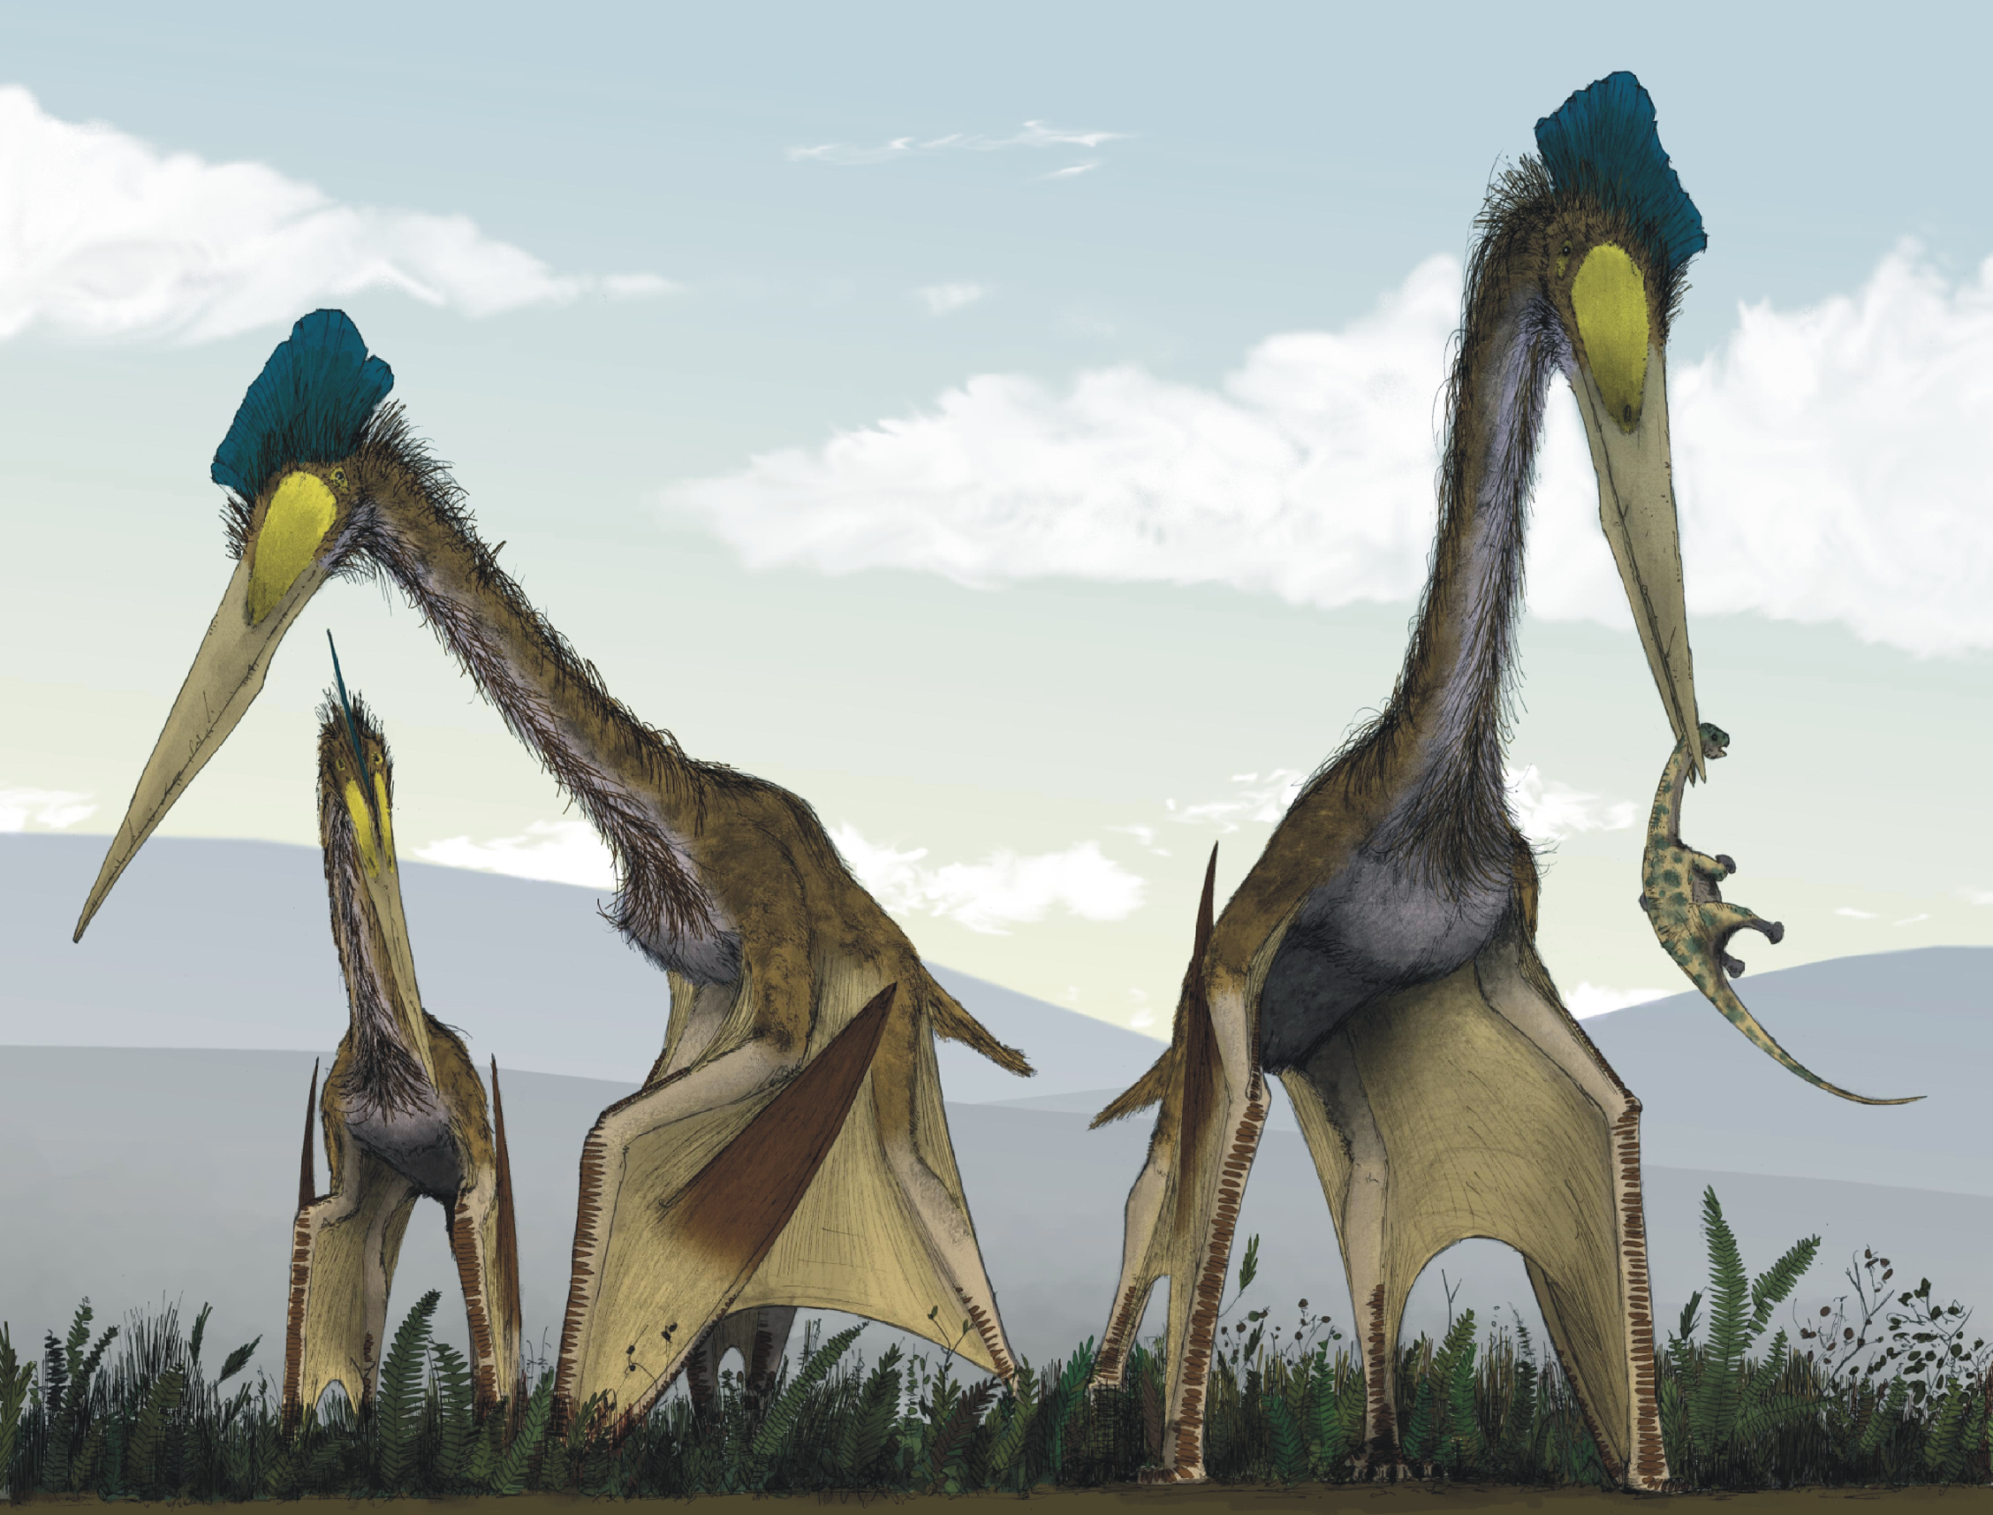 Life_restoration_of_a_group_of_giant_azhdarchids,_Quetzalcoatlus_northropi,_foraging_on_a_Cretaceous_fern_prairie.png